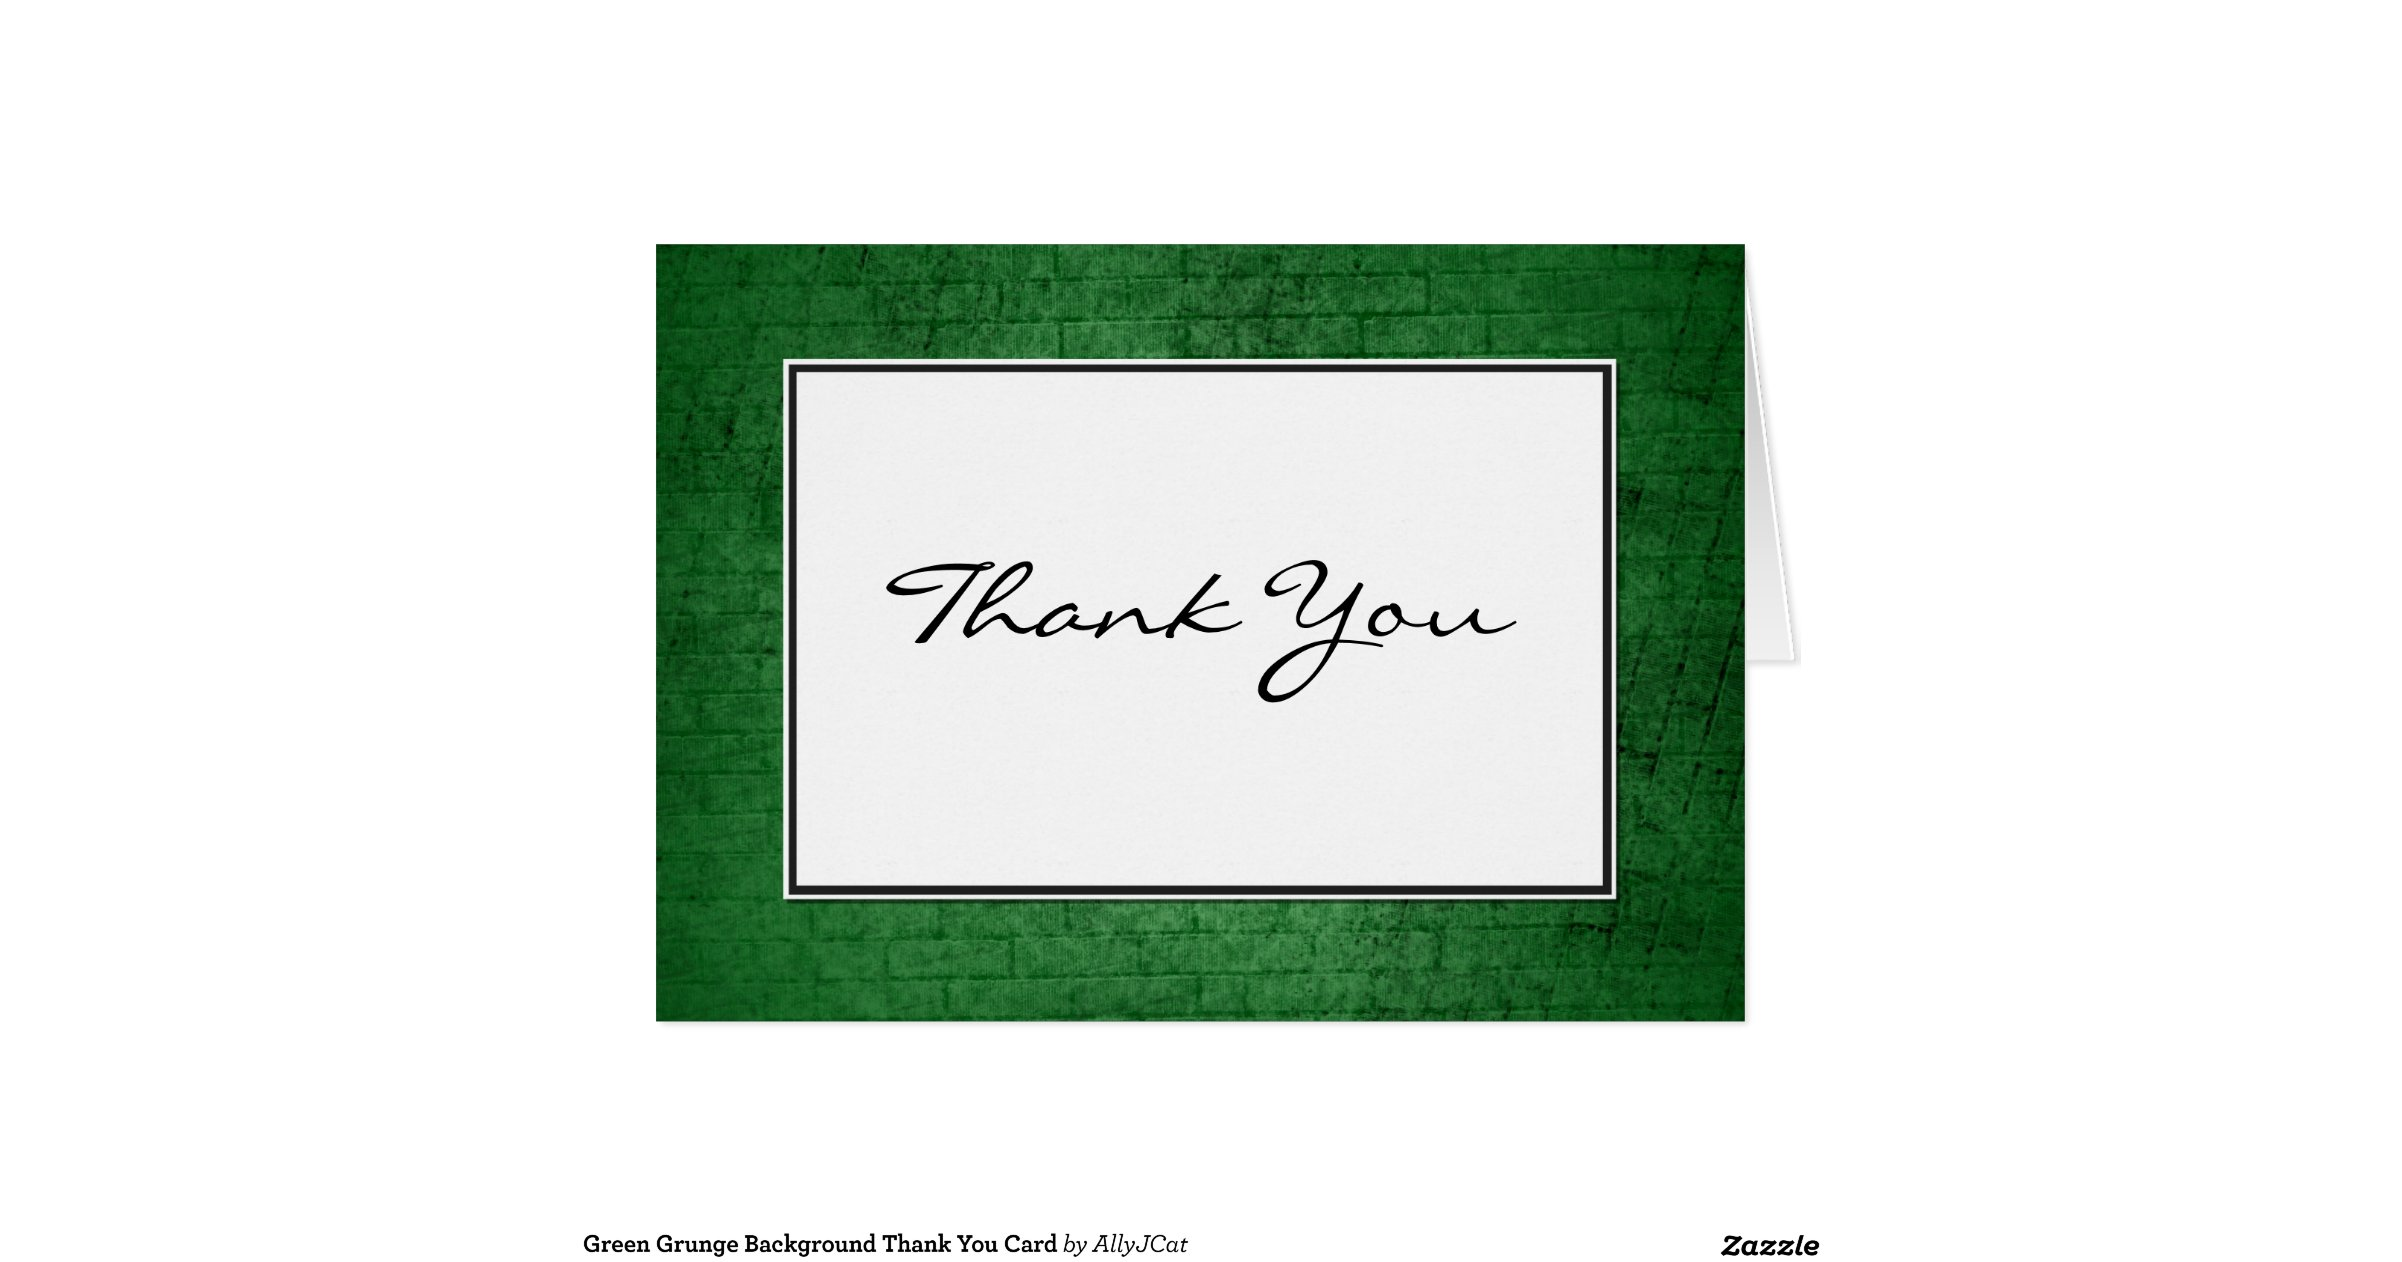 Green_grunge_background_thank_you_card